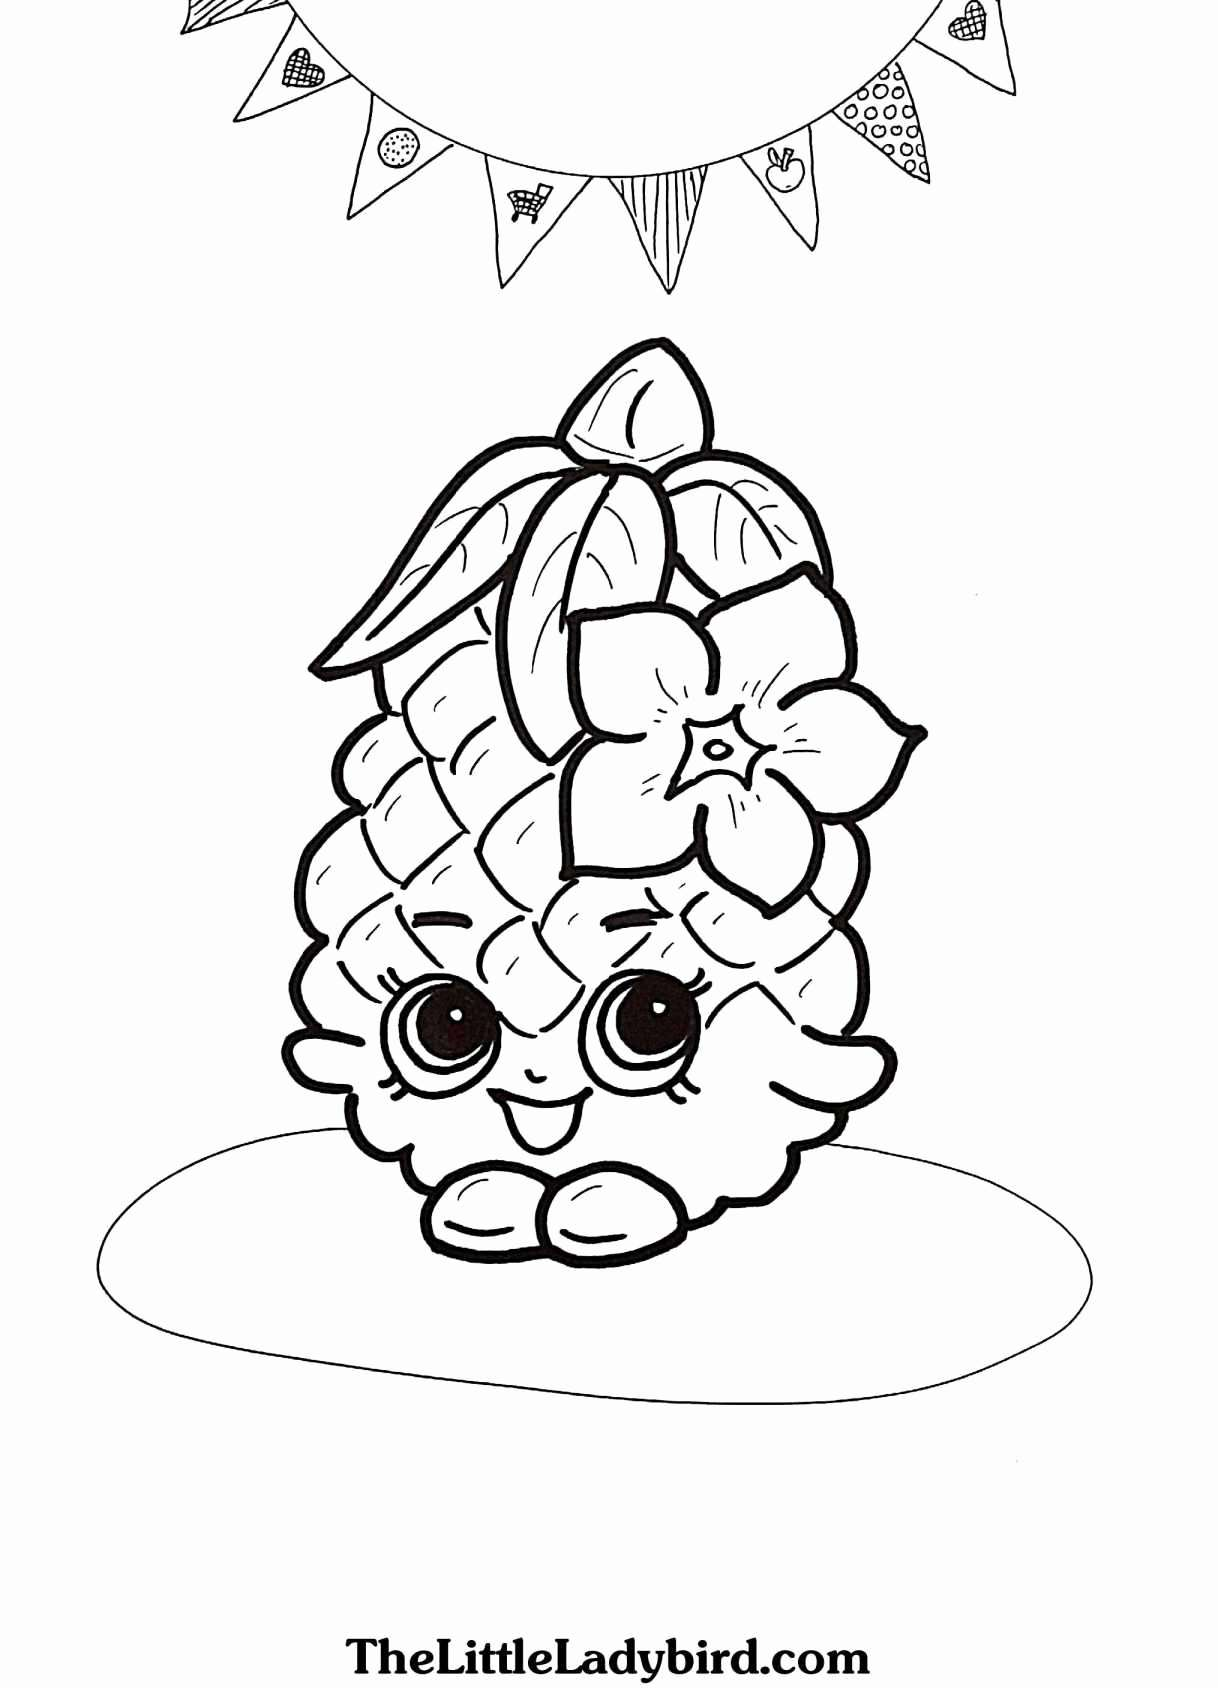 Free Victorian Christmas Coloring Pages With Best Of Images Download 3000